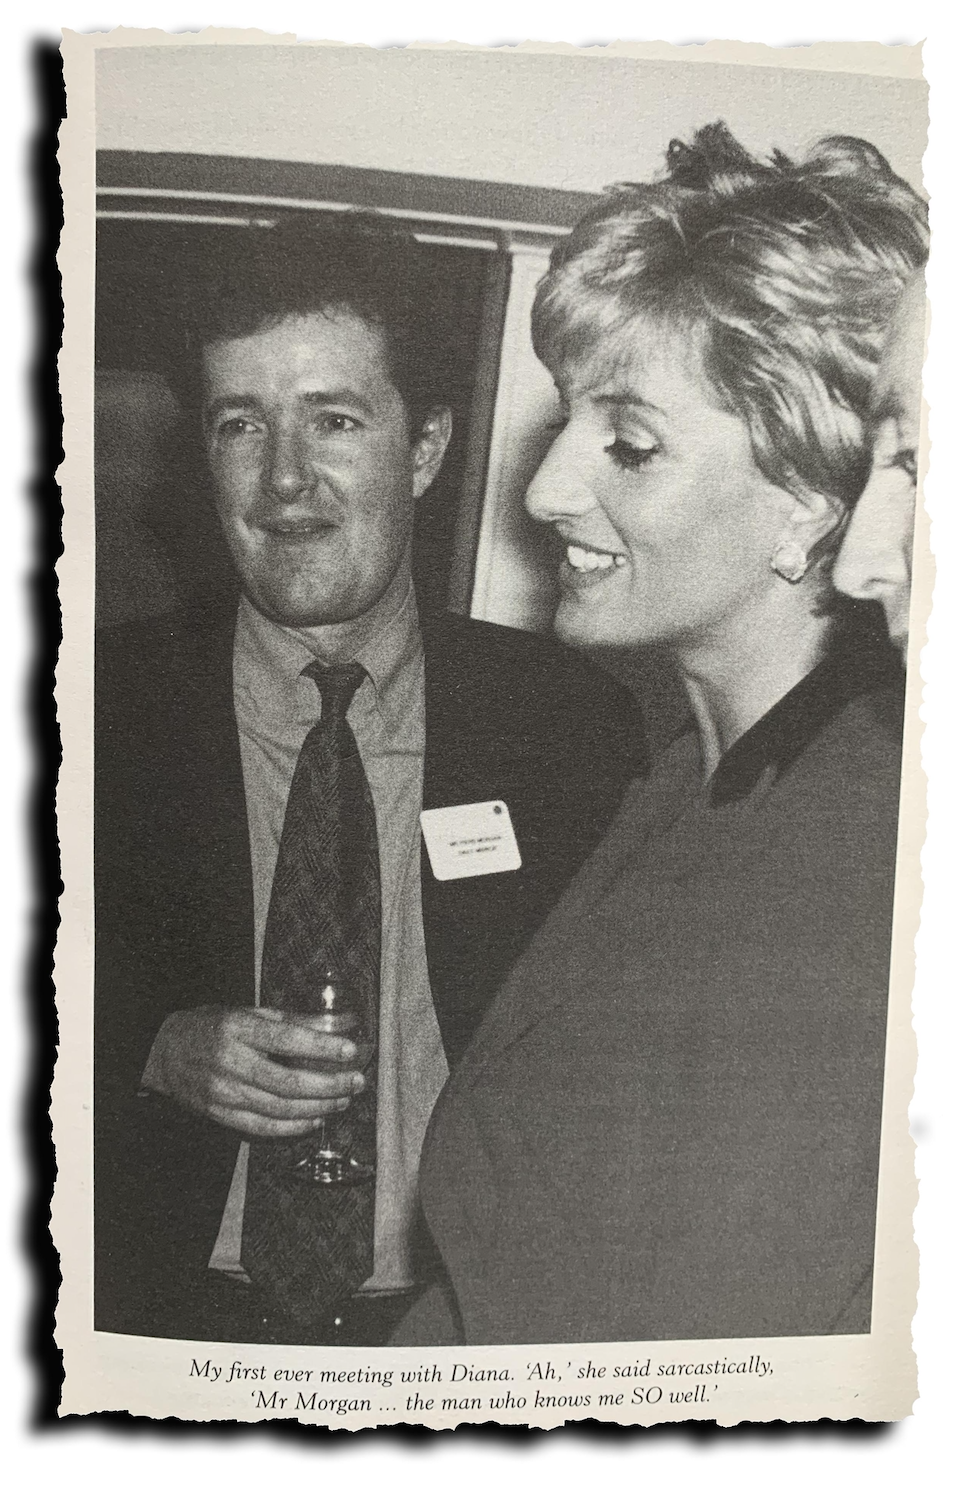 Cultivated: Piers Morgan wrote about his professional relationship with Diana, Princess of Wales in his 2005 book,  The Insider